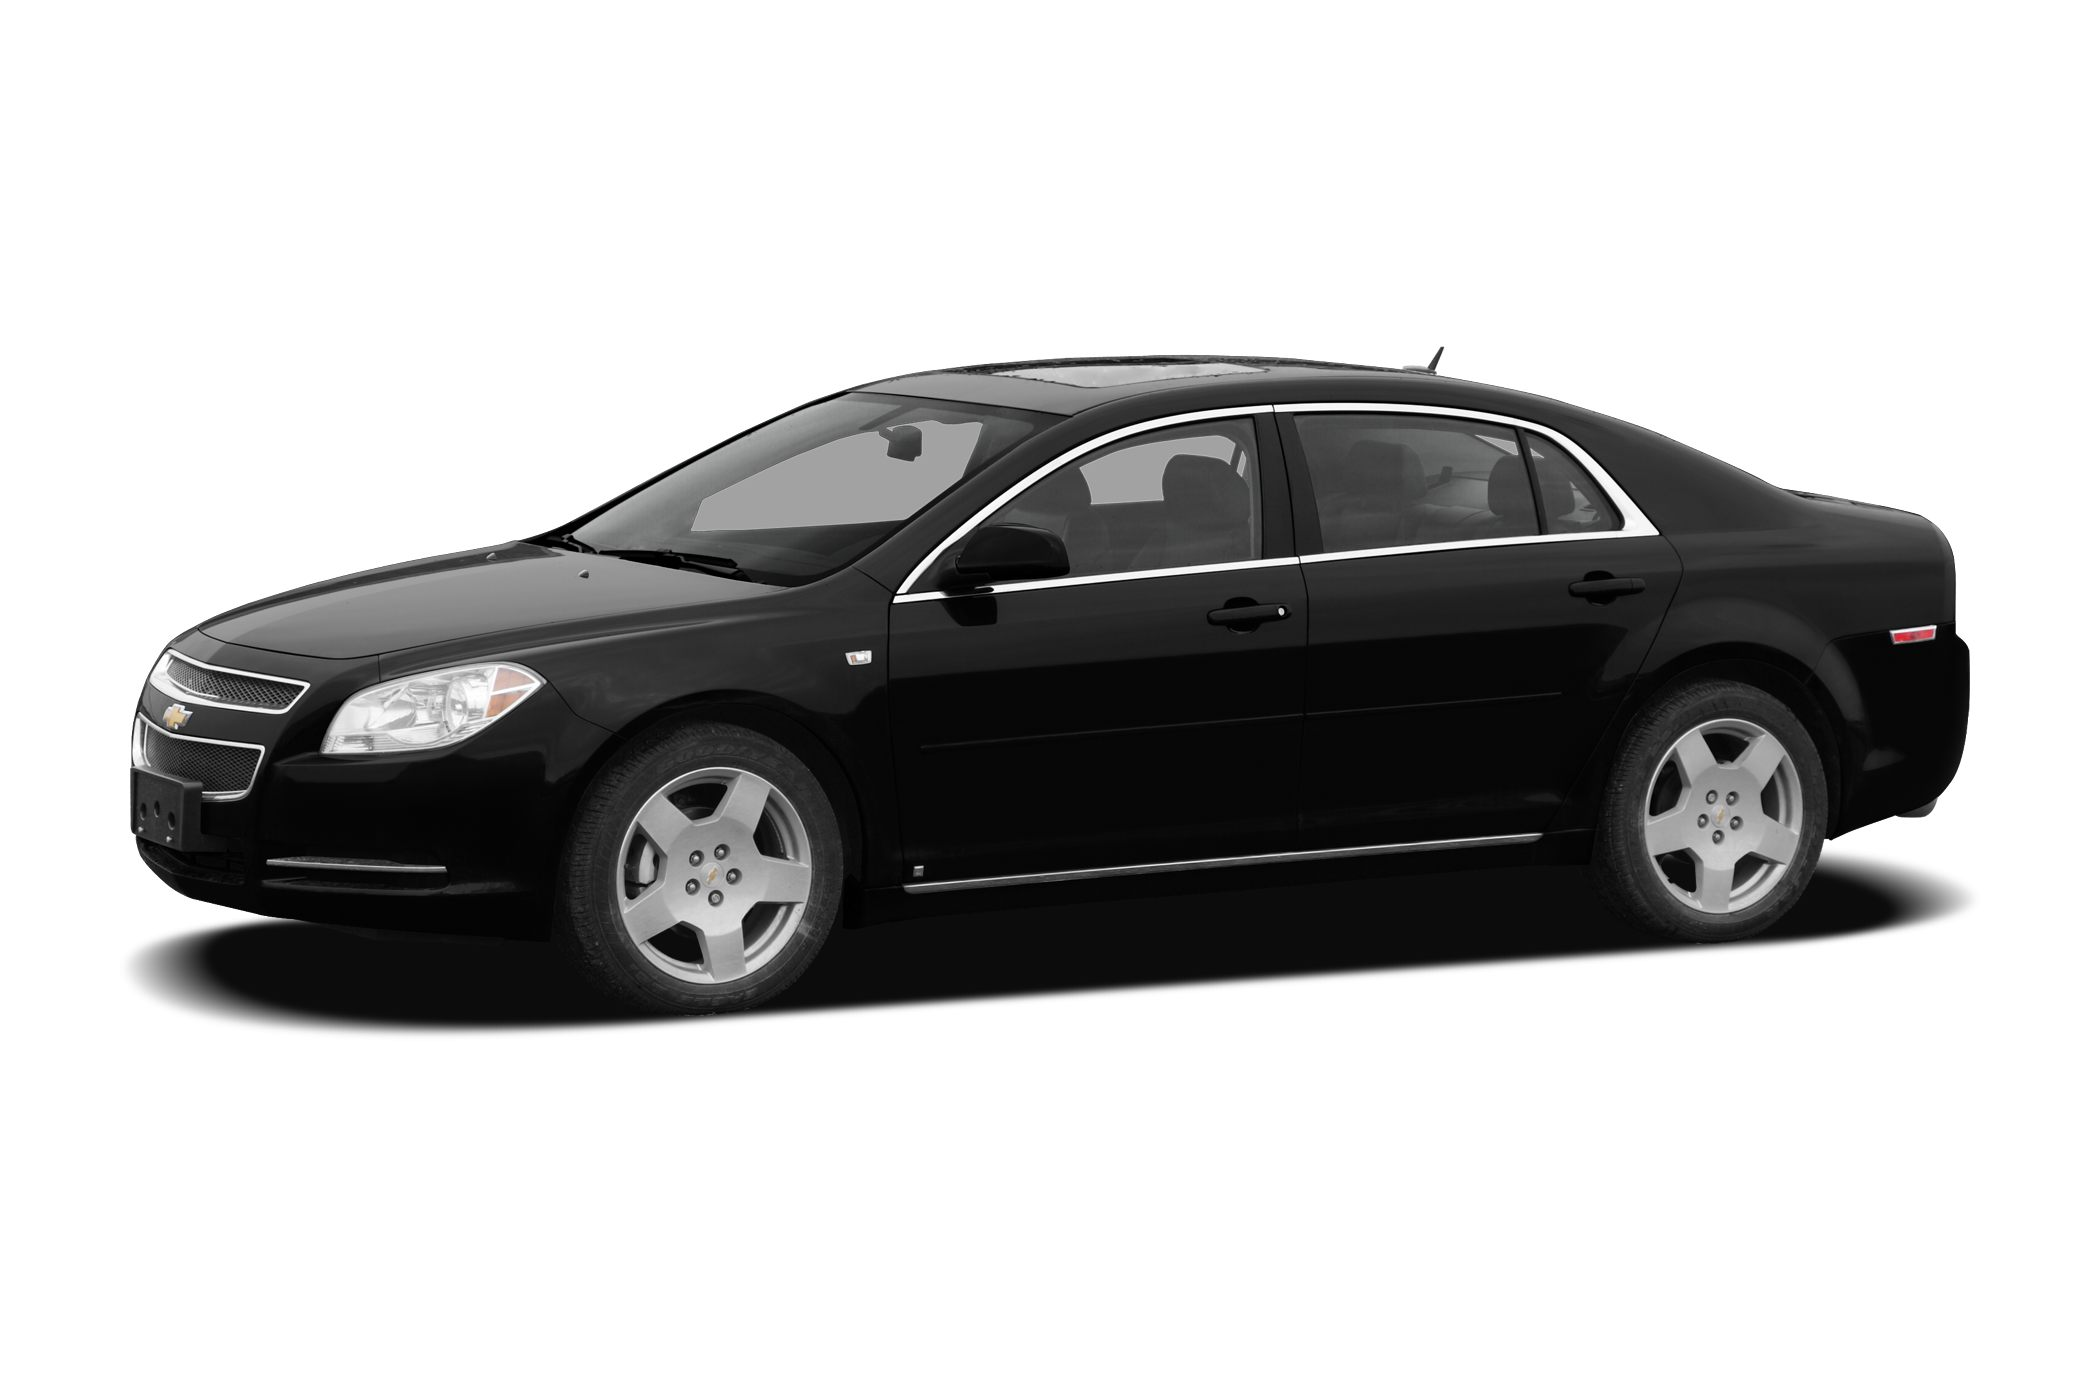 2008 Chevrolet Malibu LTZ Sedan for sale in Marquette for $10,995 with 123,324 miles